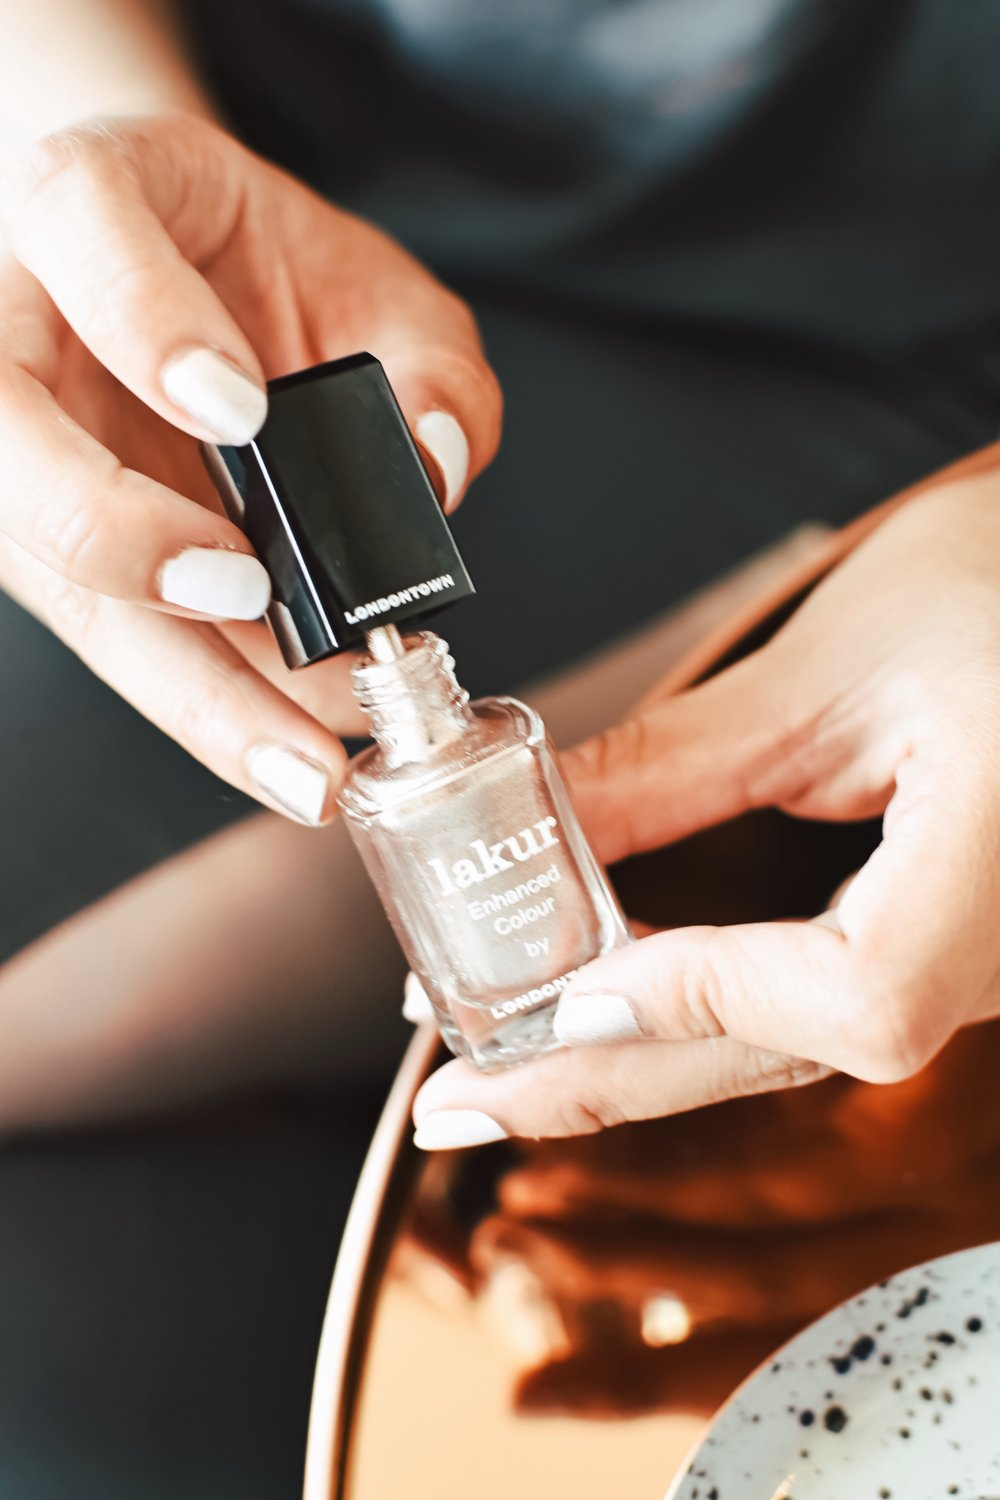 Effective Nail care, safe nail care for pregnant women